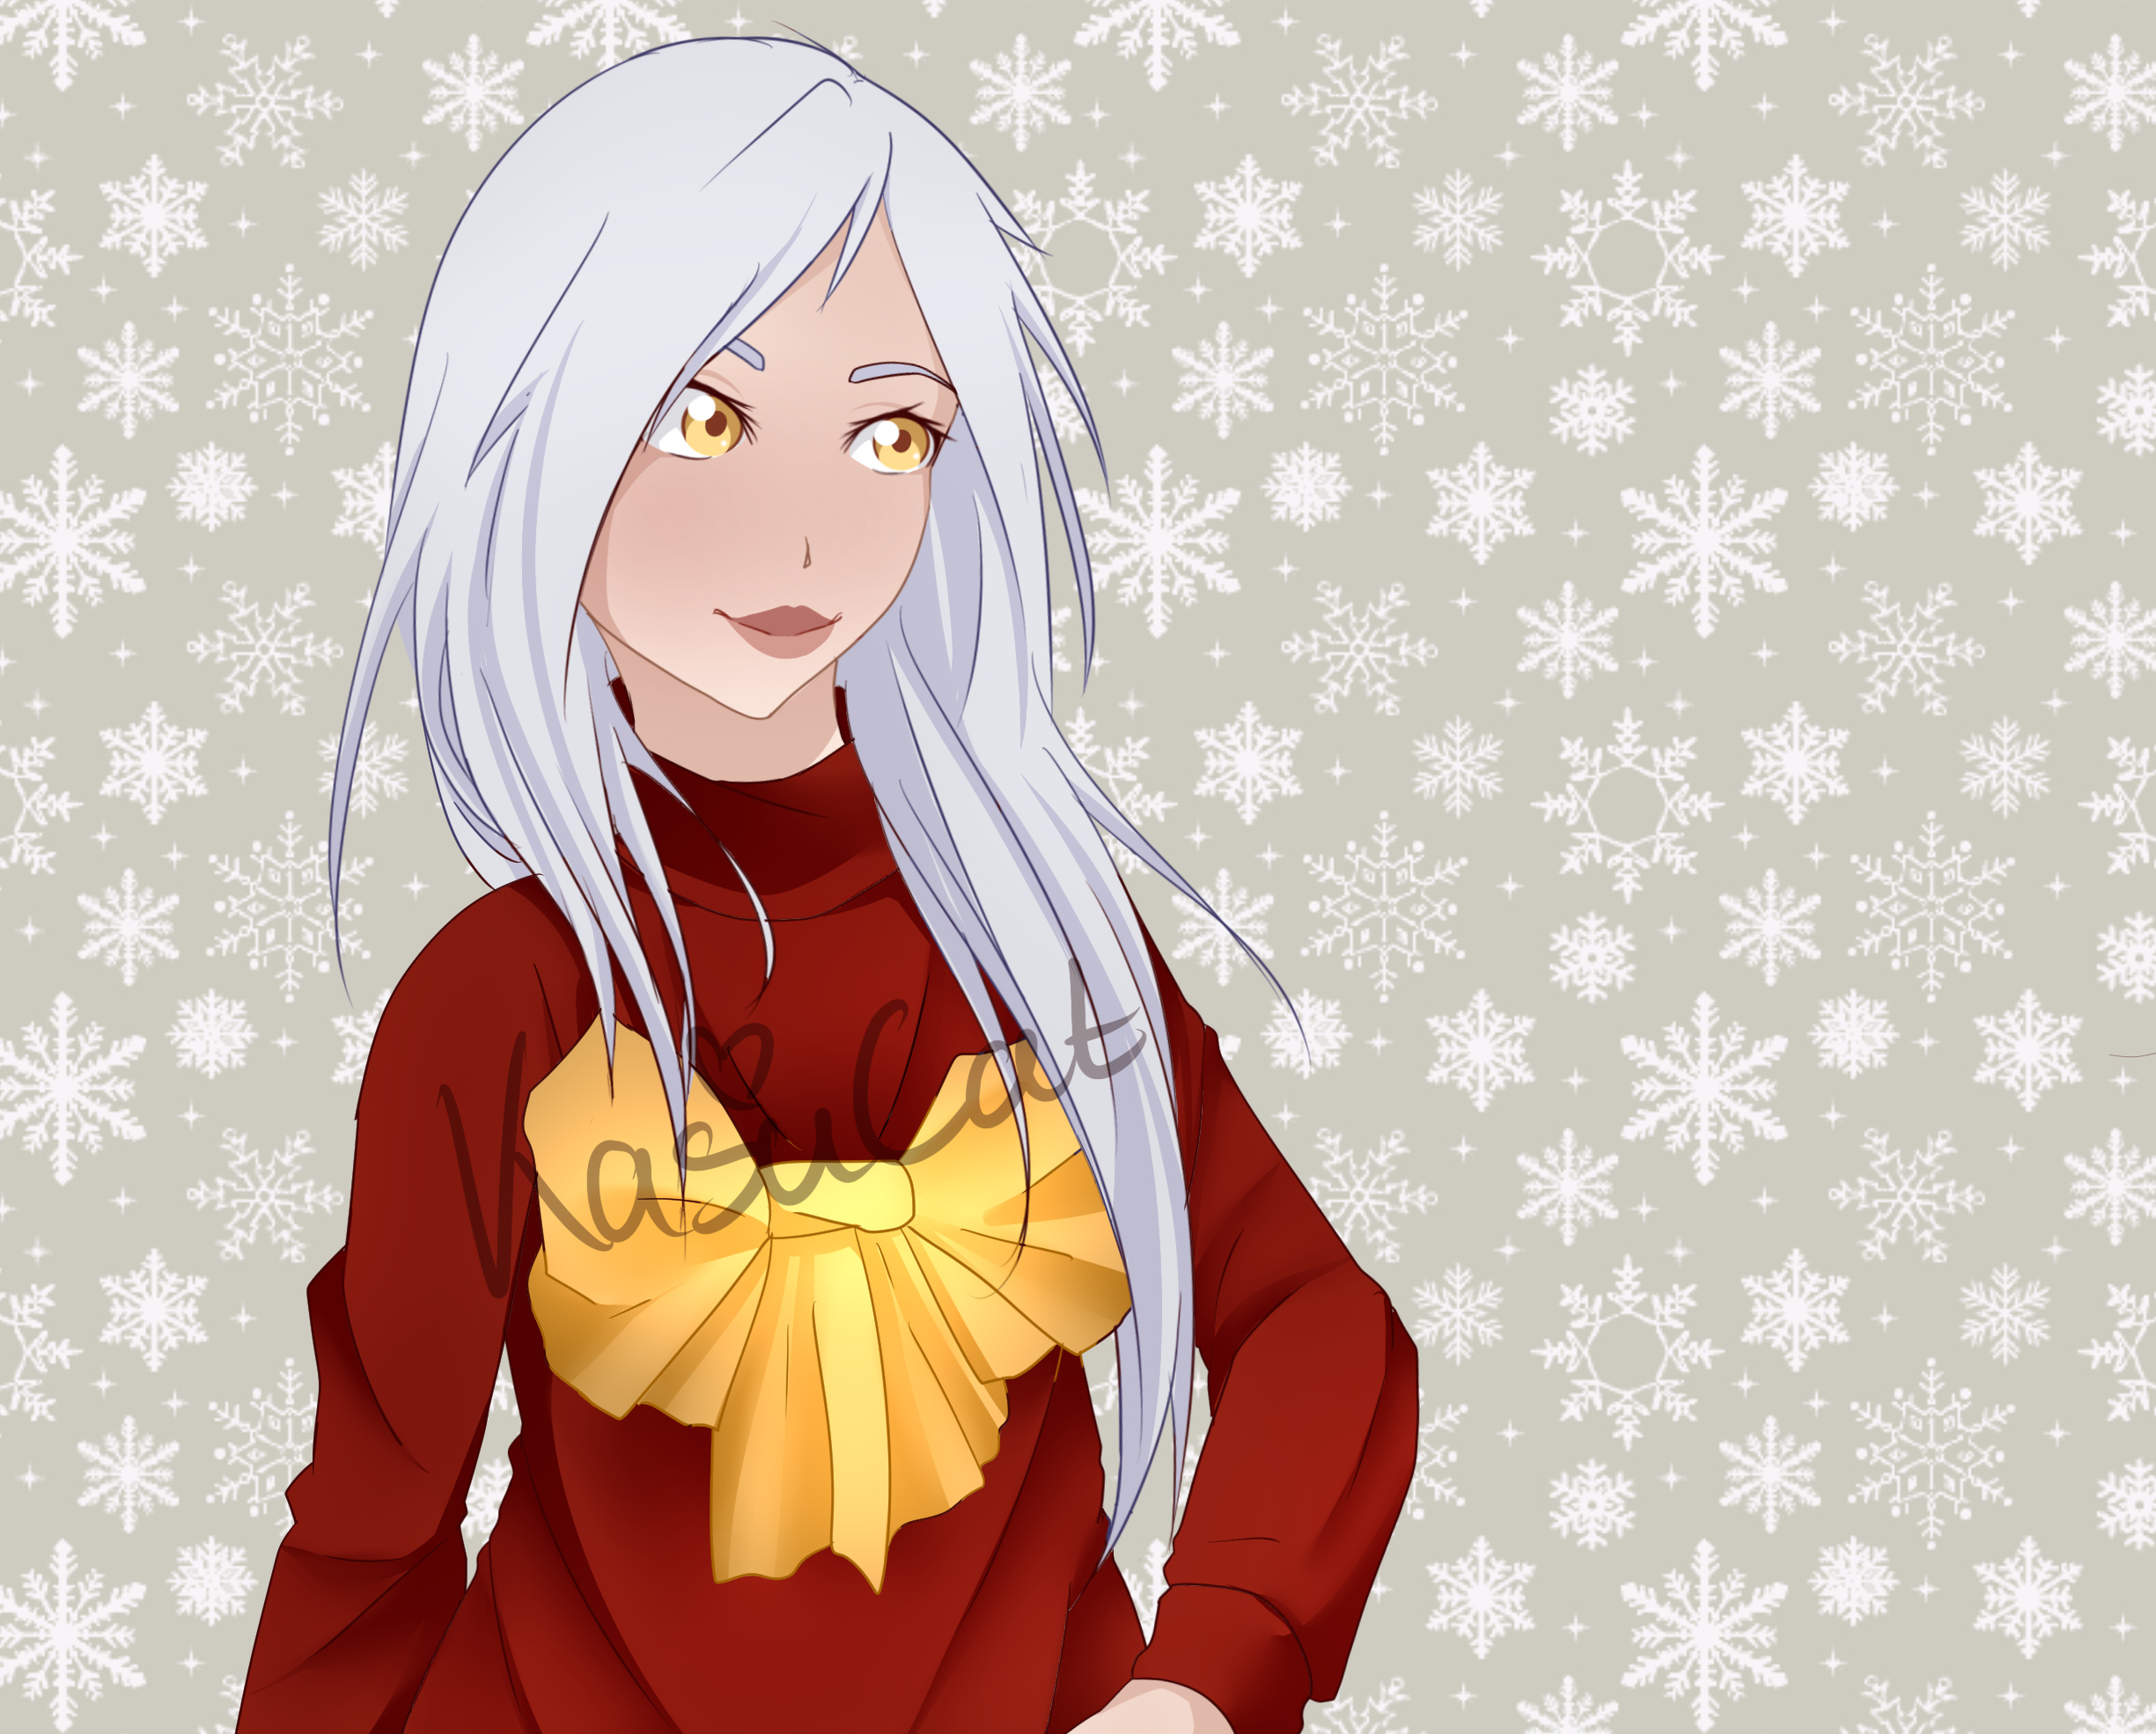 HSV]DoX Ugly Christmas Sweater by Kasu Cat on DeviantArt